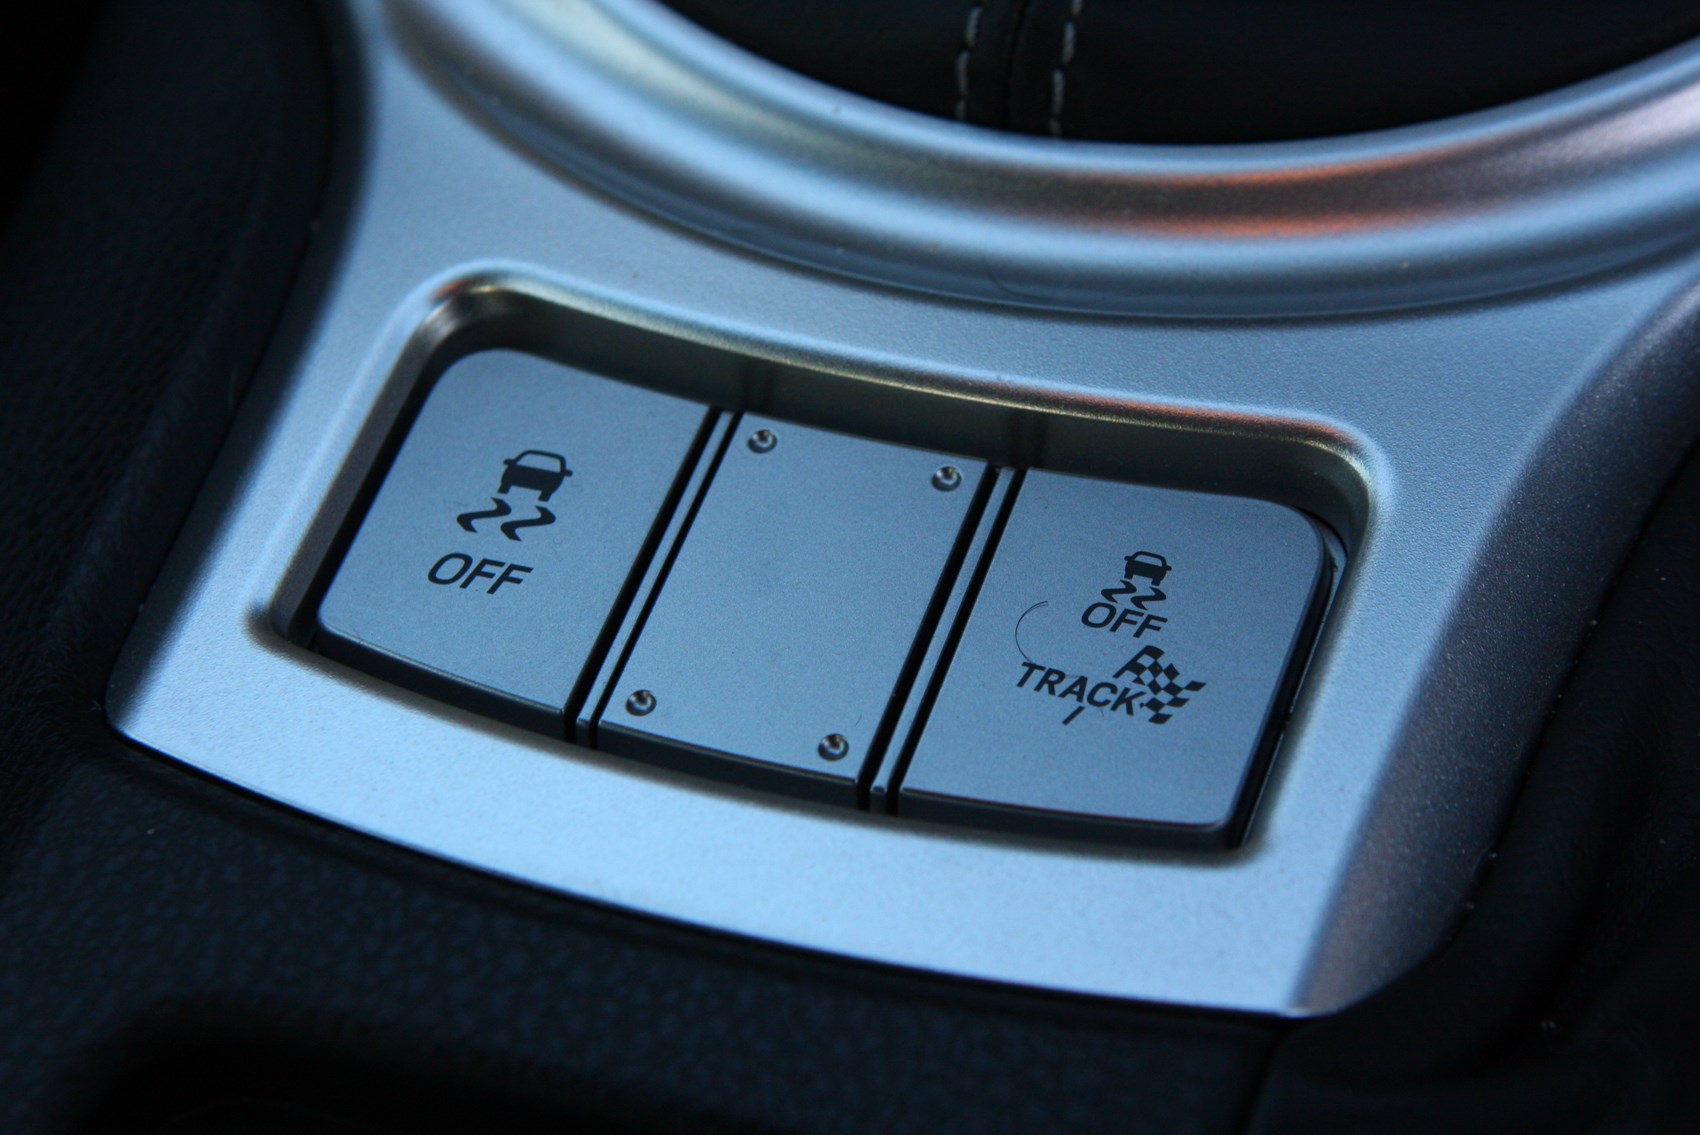 The Toyota GT86 features a pair of buttons we've not used yet - Track mode and everything switched off